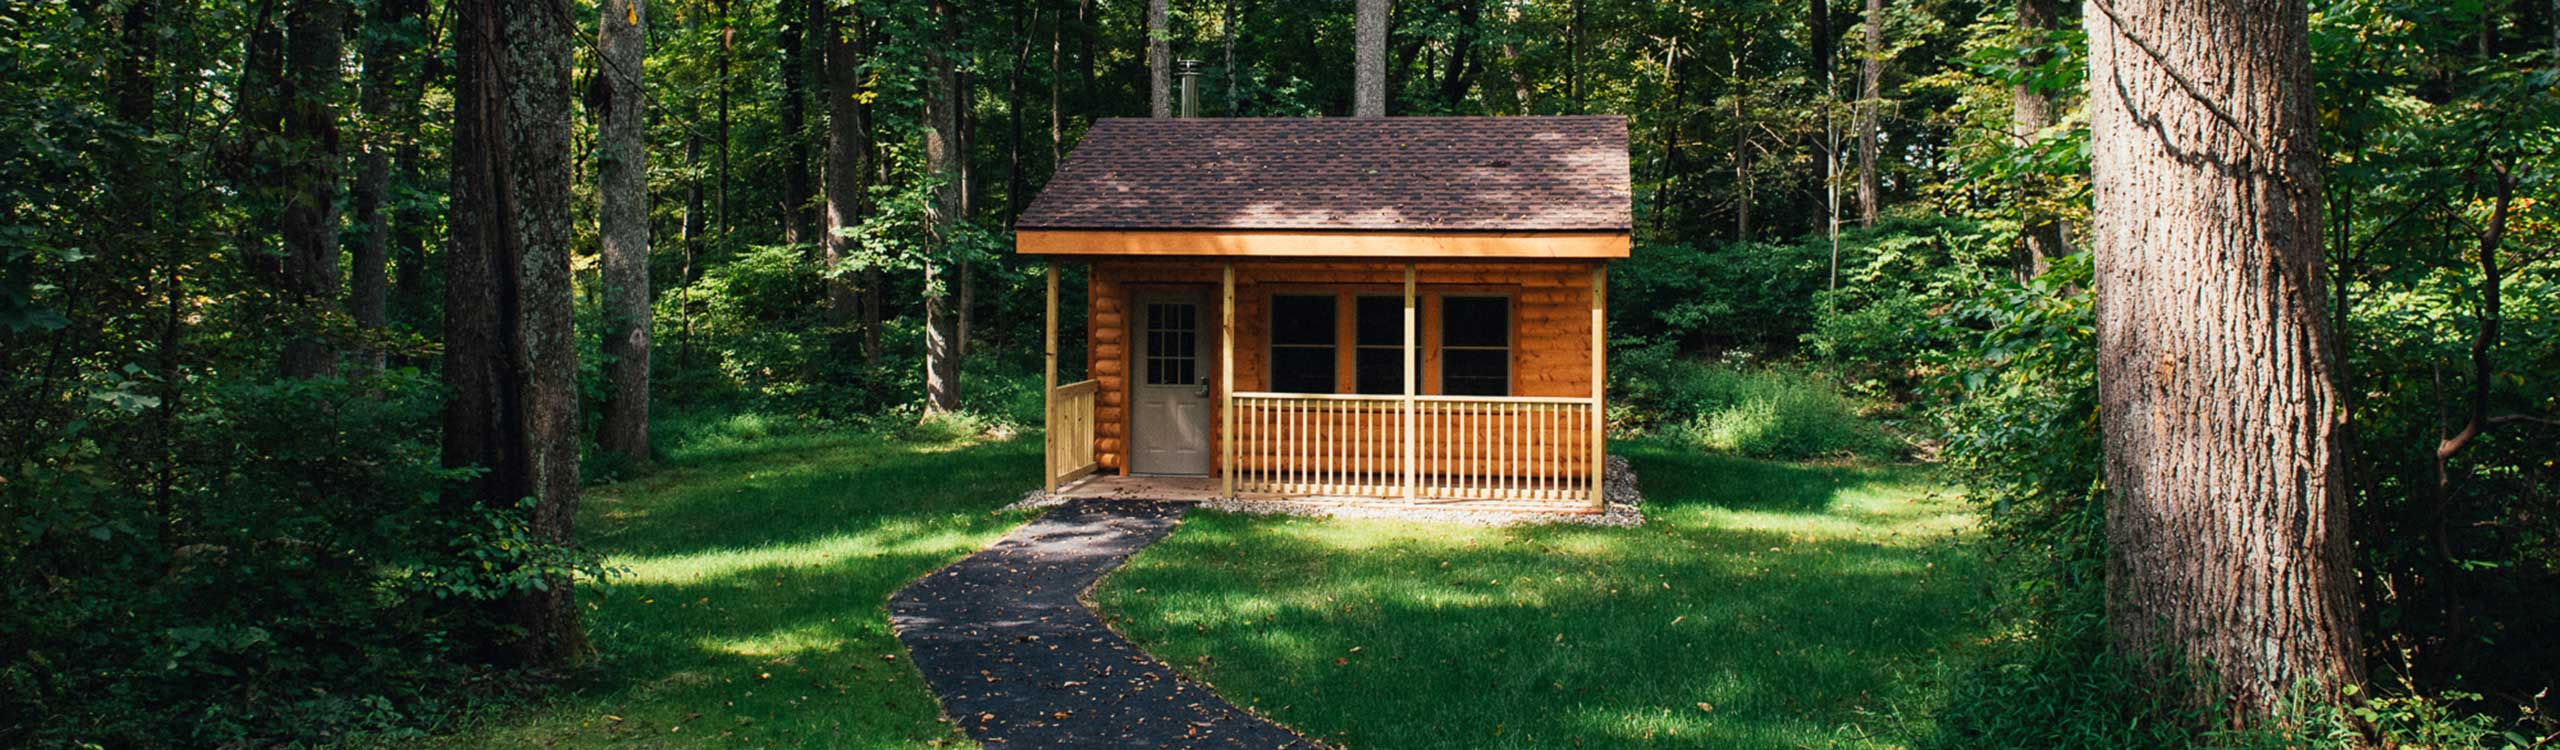 New Jersey Campground Reservations